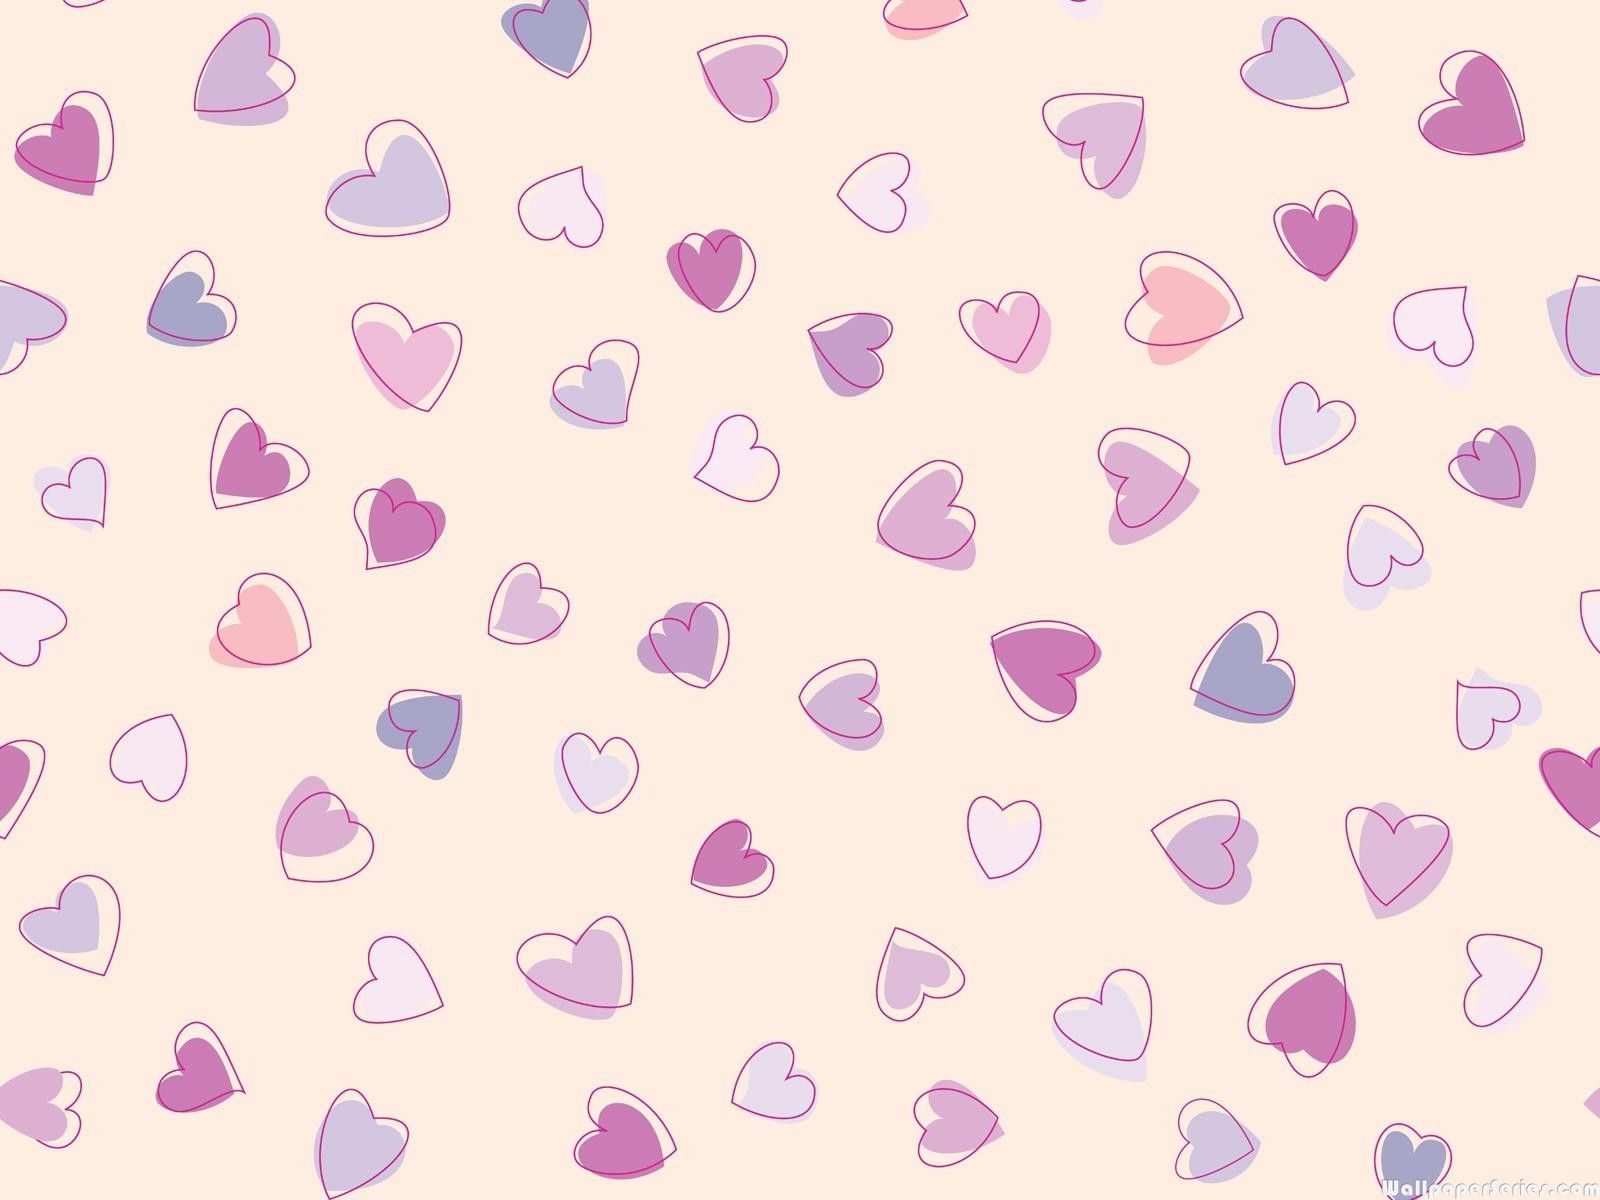 Cute Heart Tumblr Wallpapers HD Resolution with High